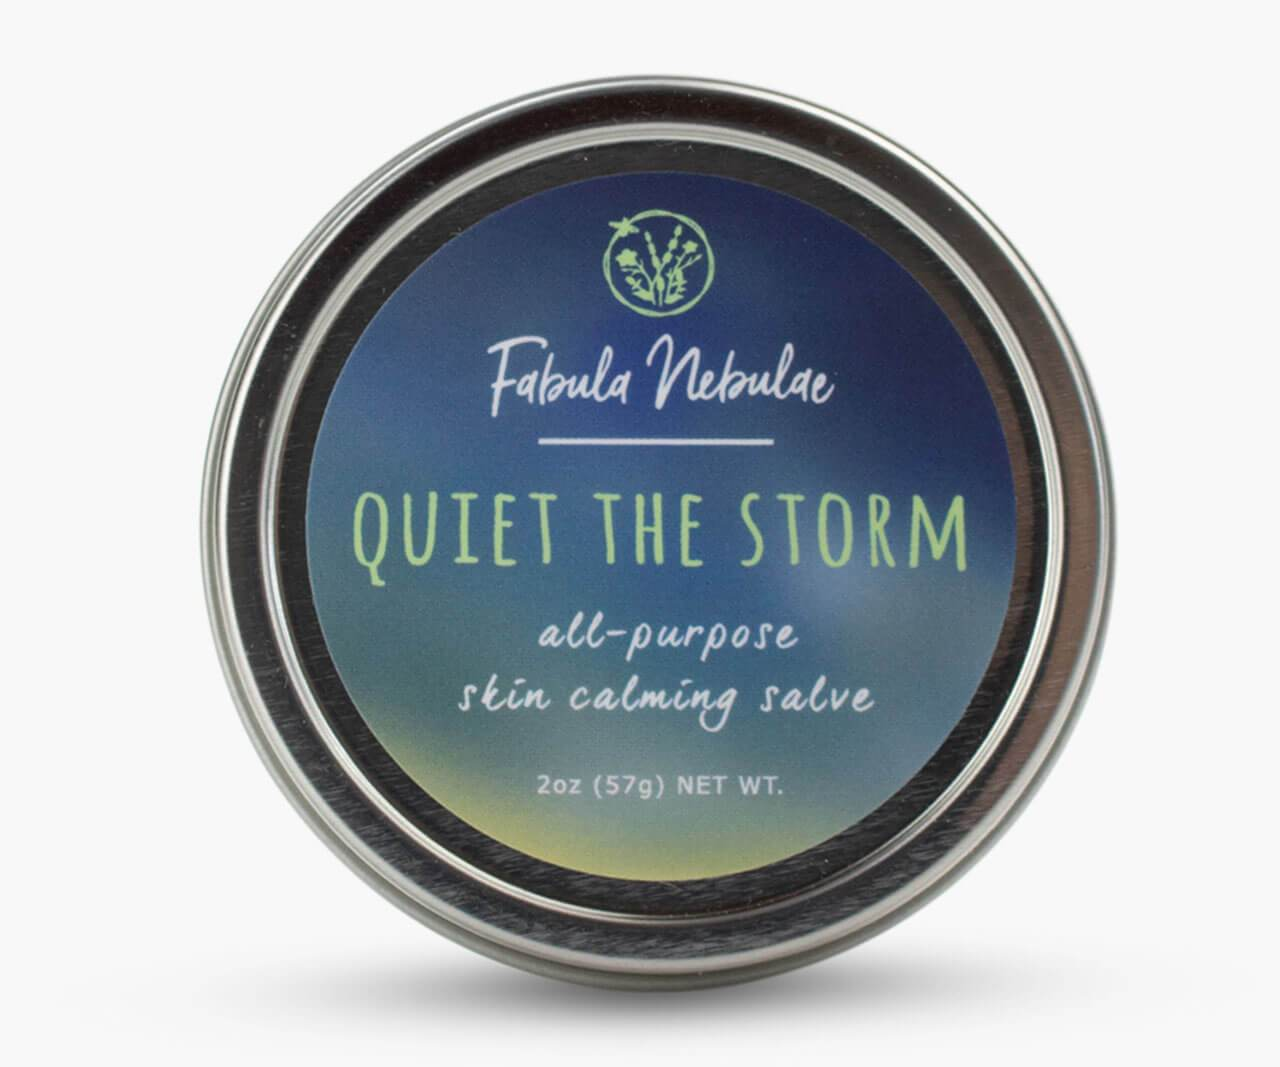 Salve to Quiet the Storm - Skin Calming